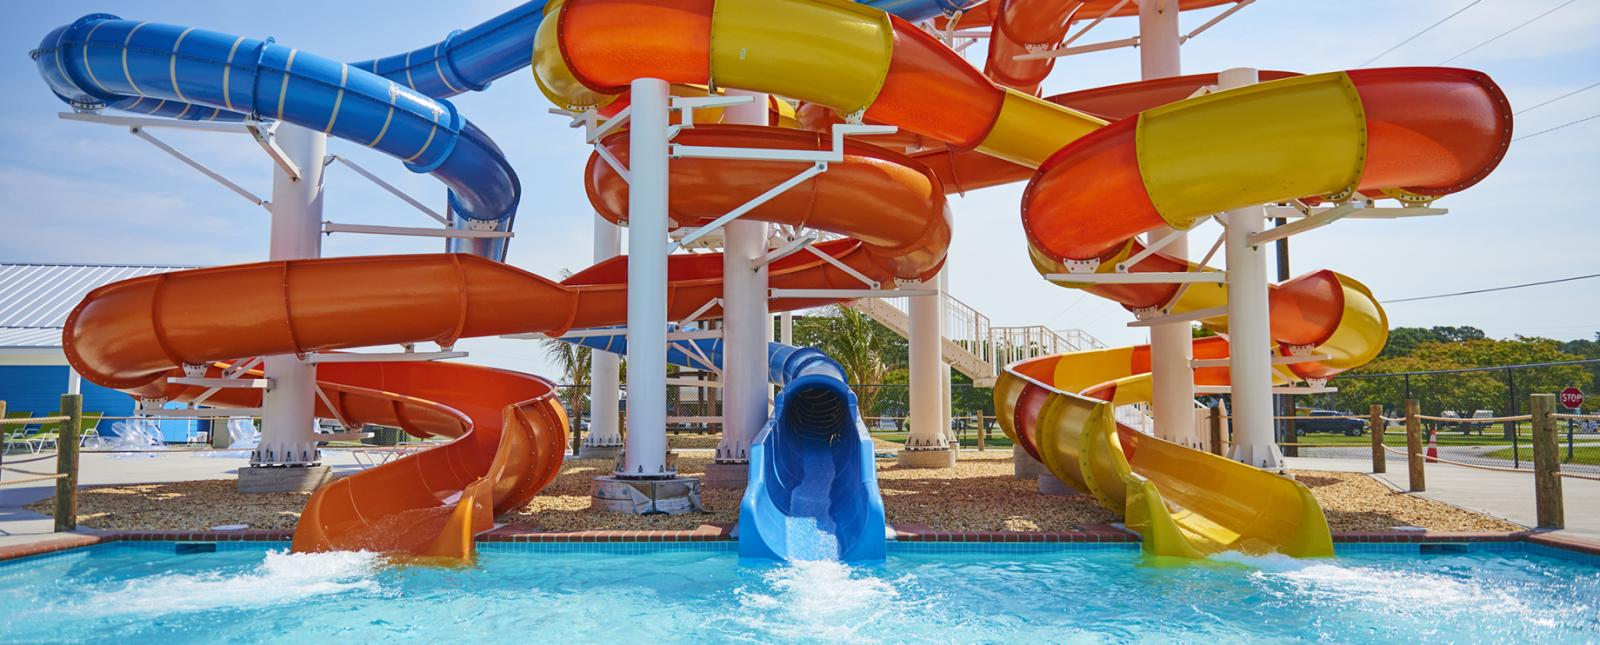 Maui Jack's Waterpark, Chincoteague Island